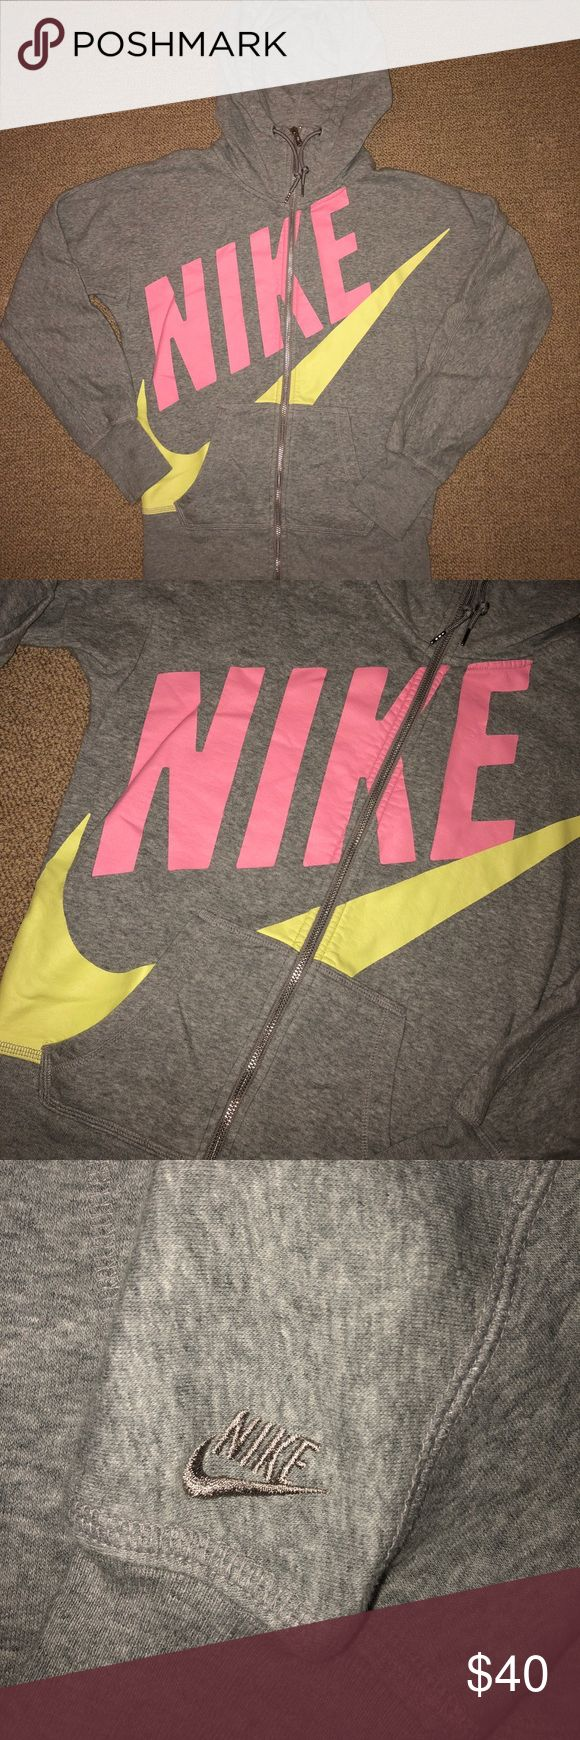 Nike Graphic Hoodie Size Small Nike graphic hoodie with